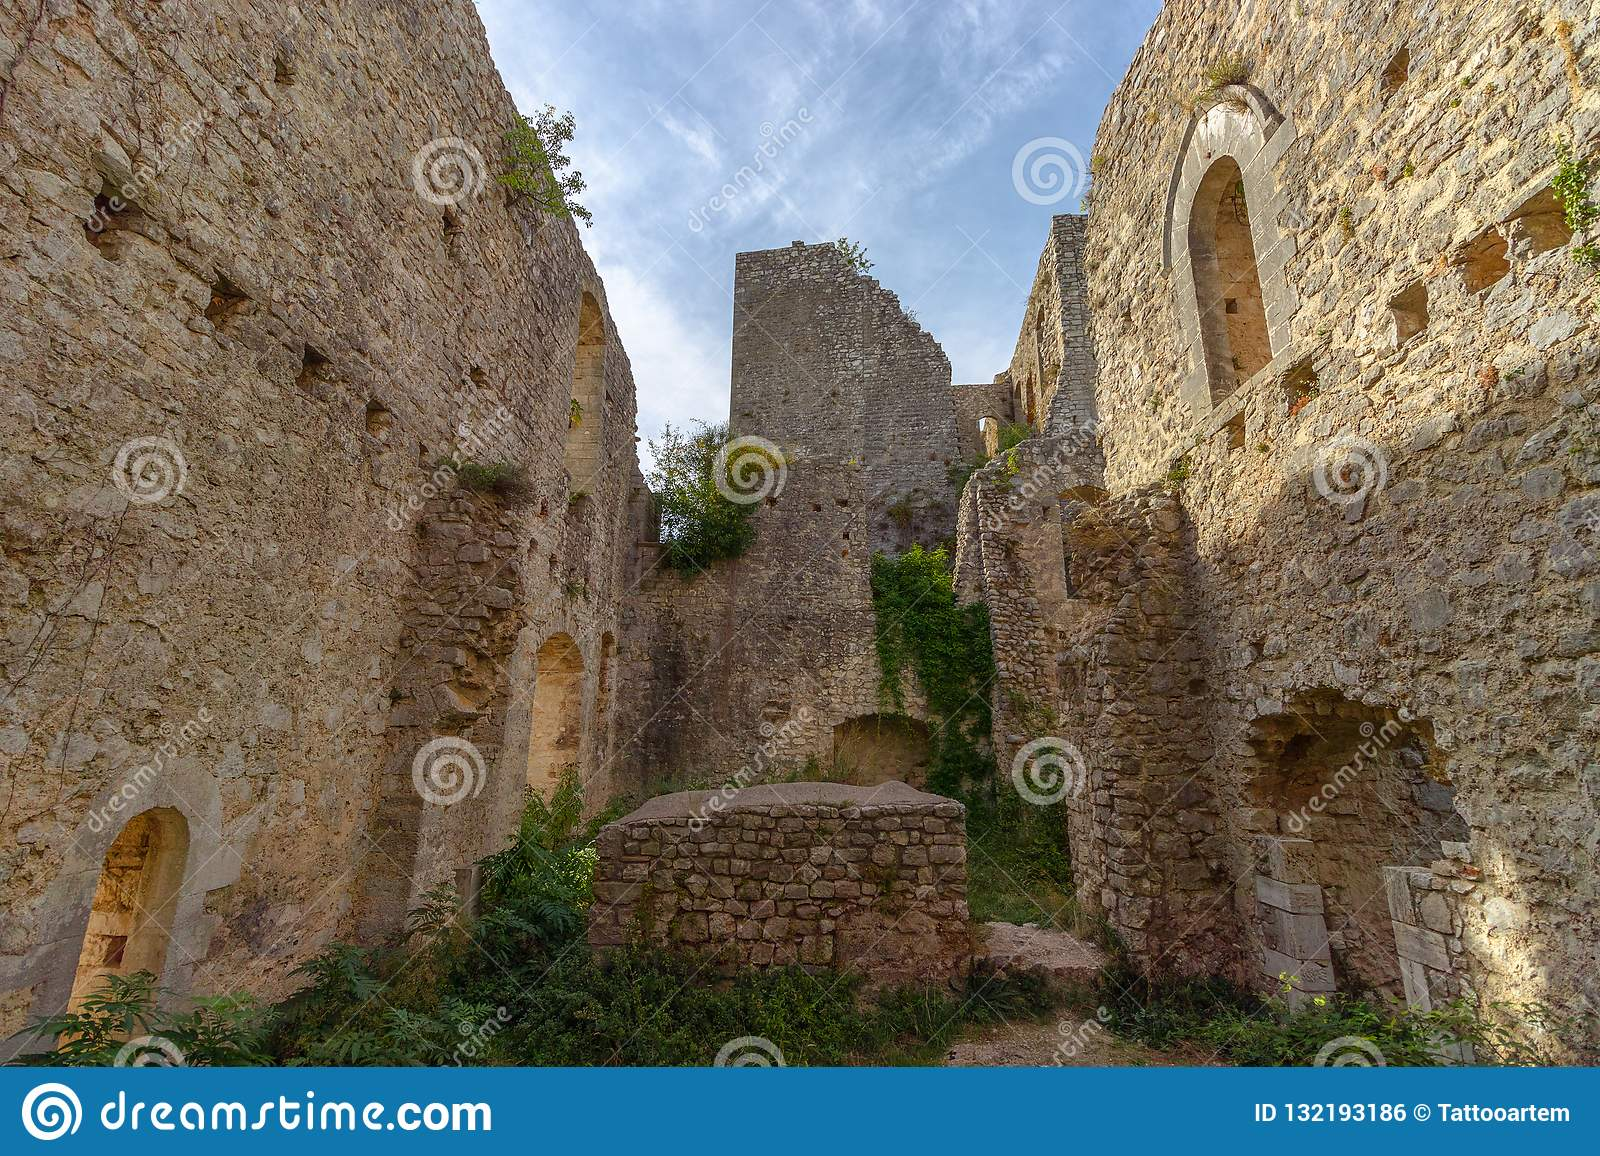 The ruins of the abandoned castle Rocca di Piediluco on the hi